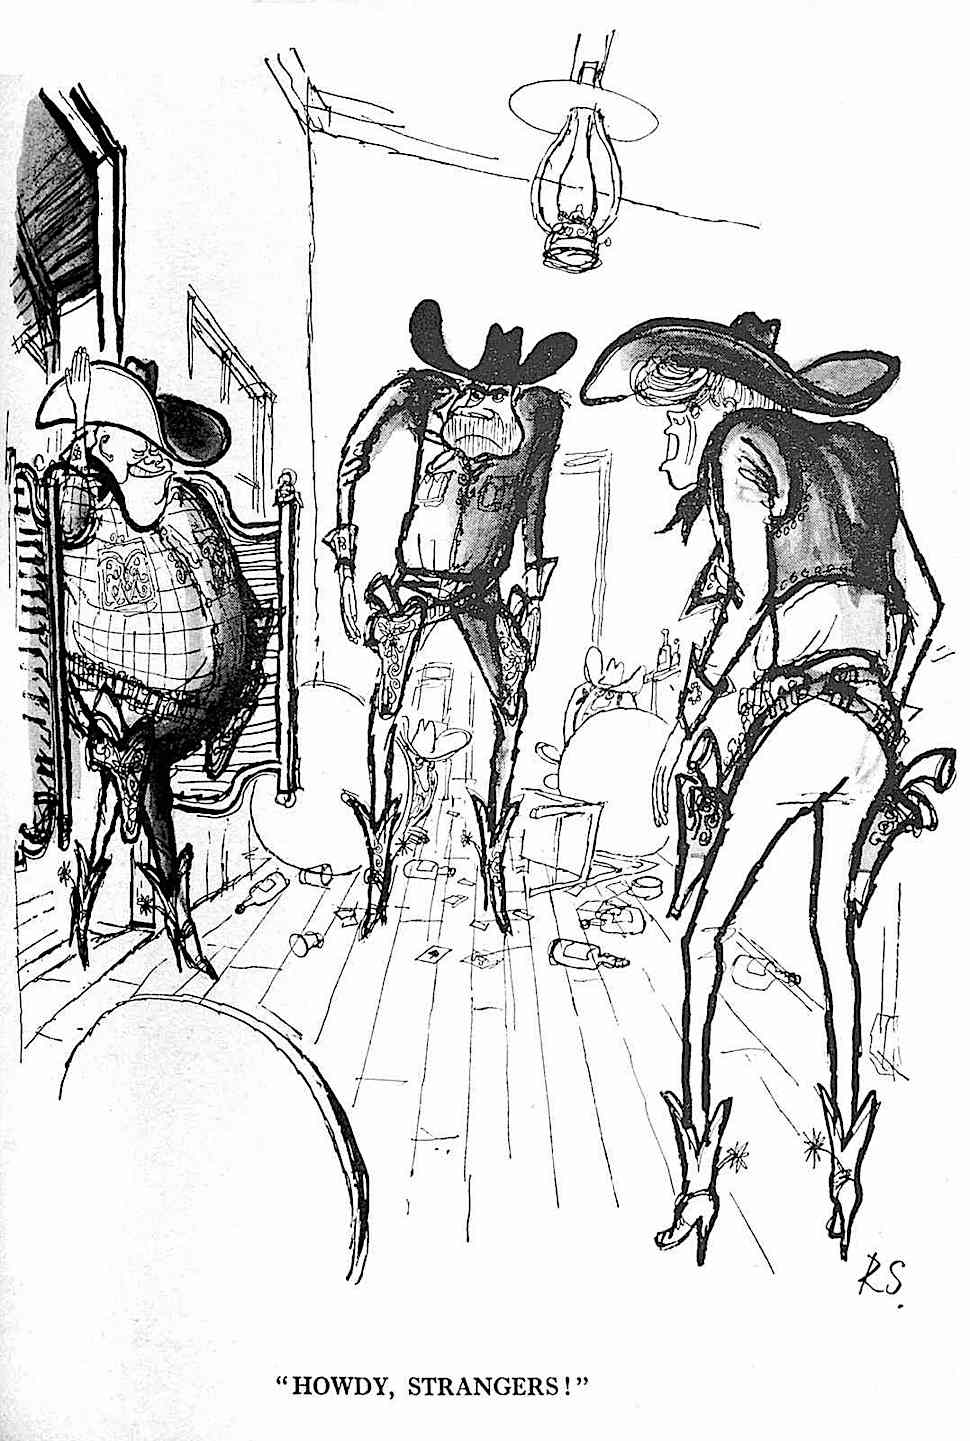 Howdy, Strangers! the USA presidential race between Richard Nixon and John F. Kennedy is complicated with the USSR's Nikita Krustief, by cartoonist Ronald Searle